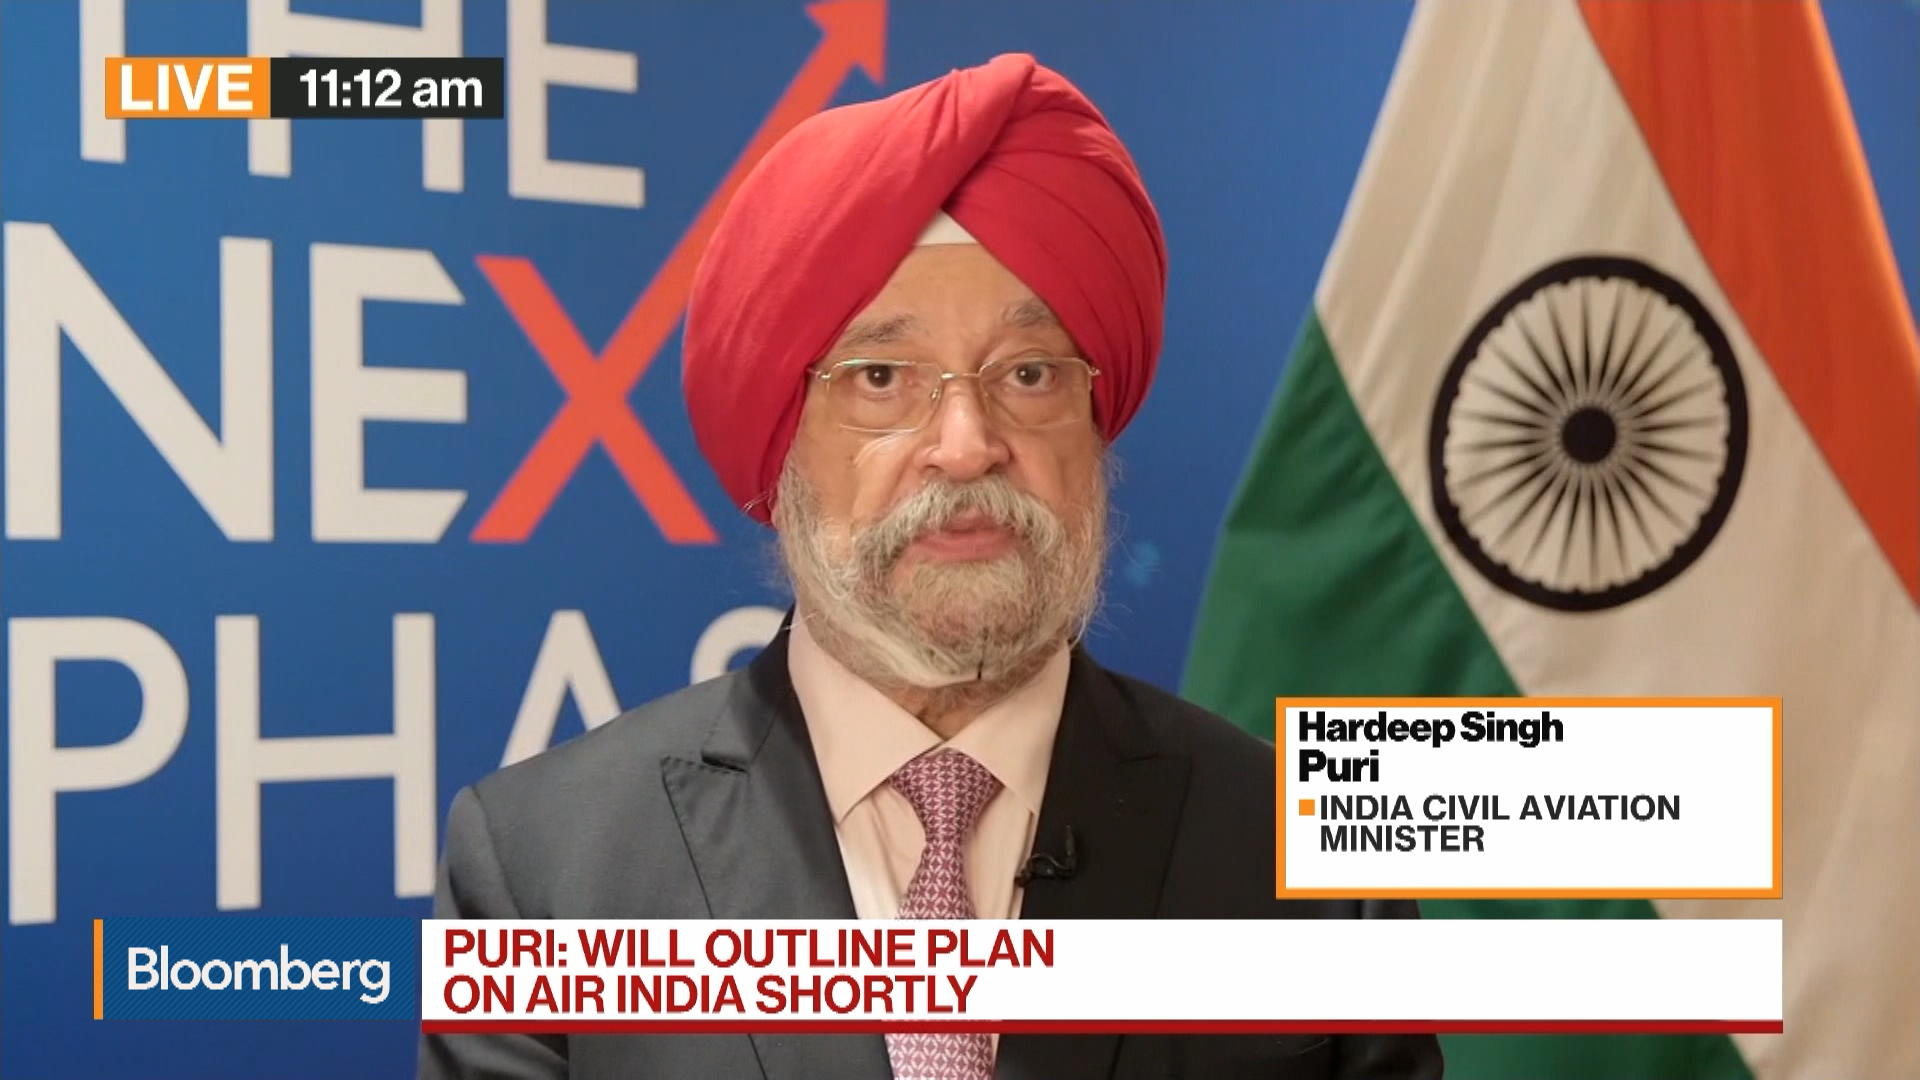 Hardeep Singh Puri, Indian Aviation Minister, on Air India, Jet Airways, Industry Outlook